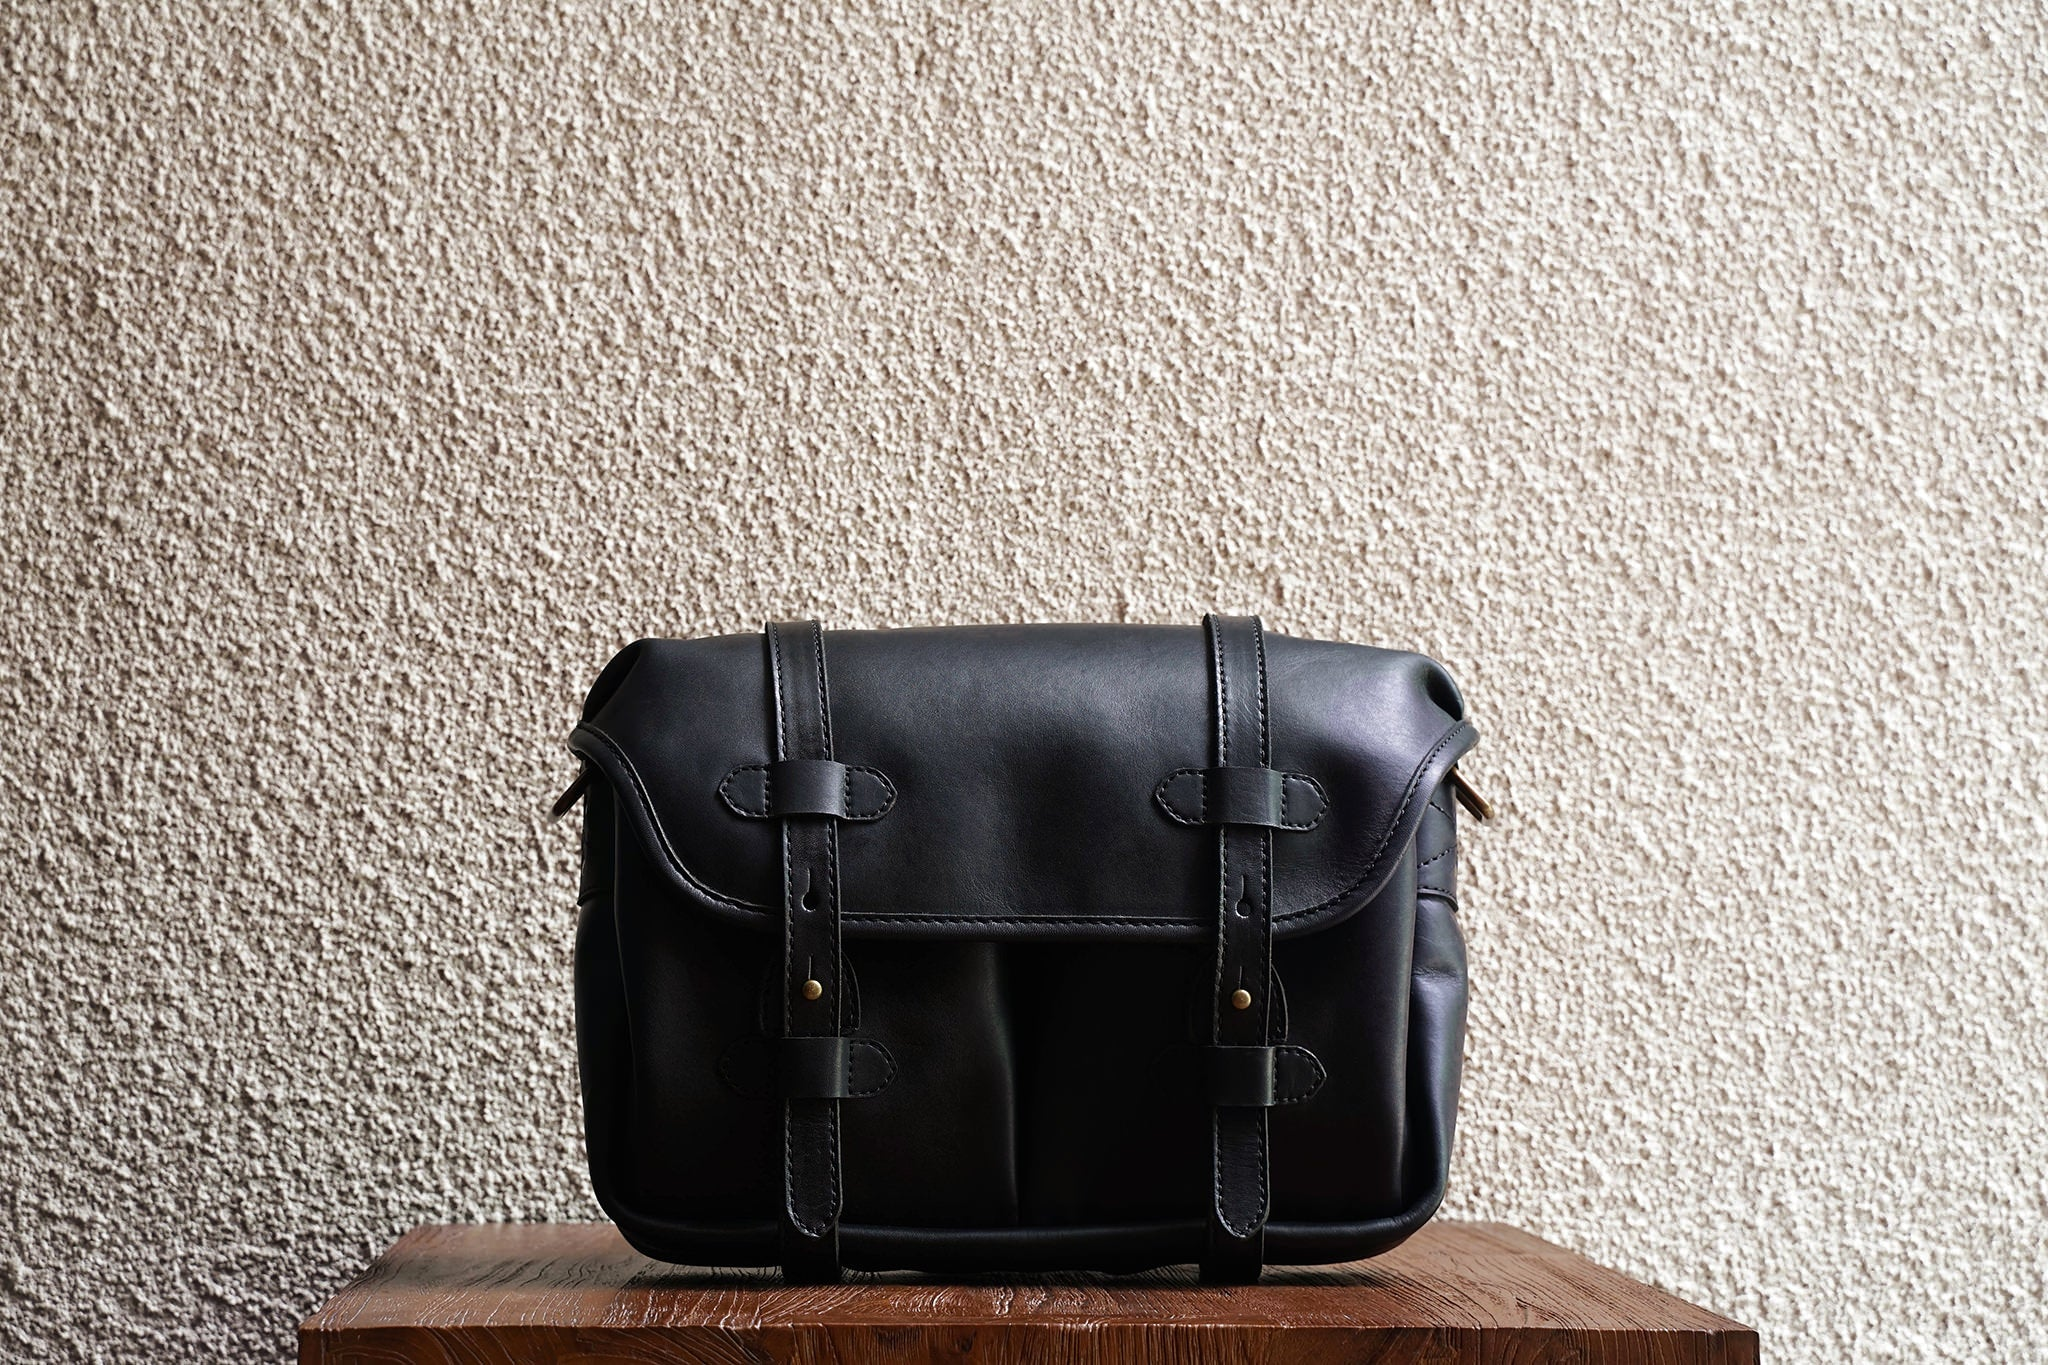 Our bags are made from as few leather pieces as possible. Fewer seams makes for a stronger bag.